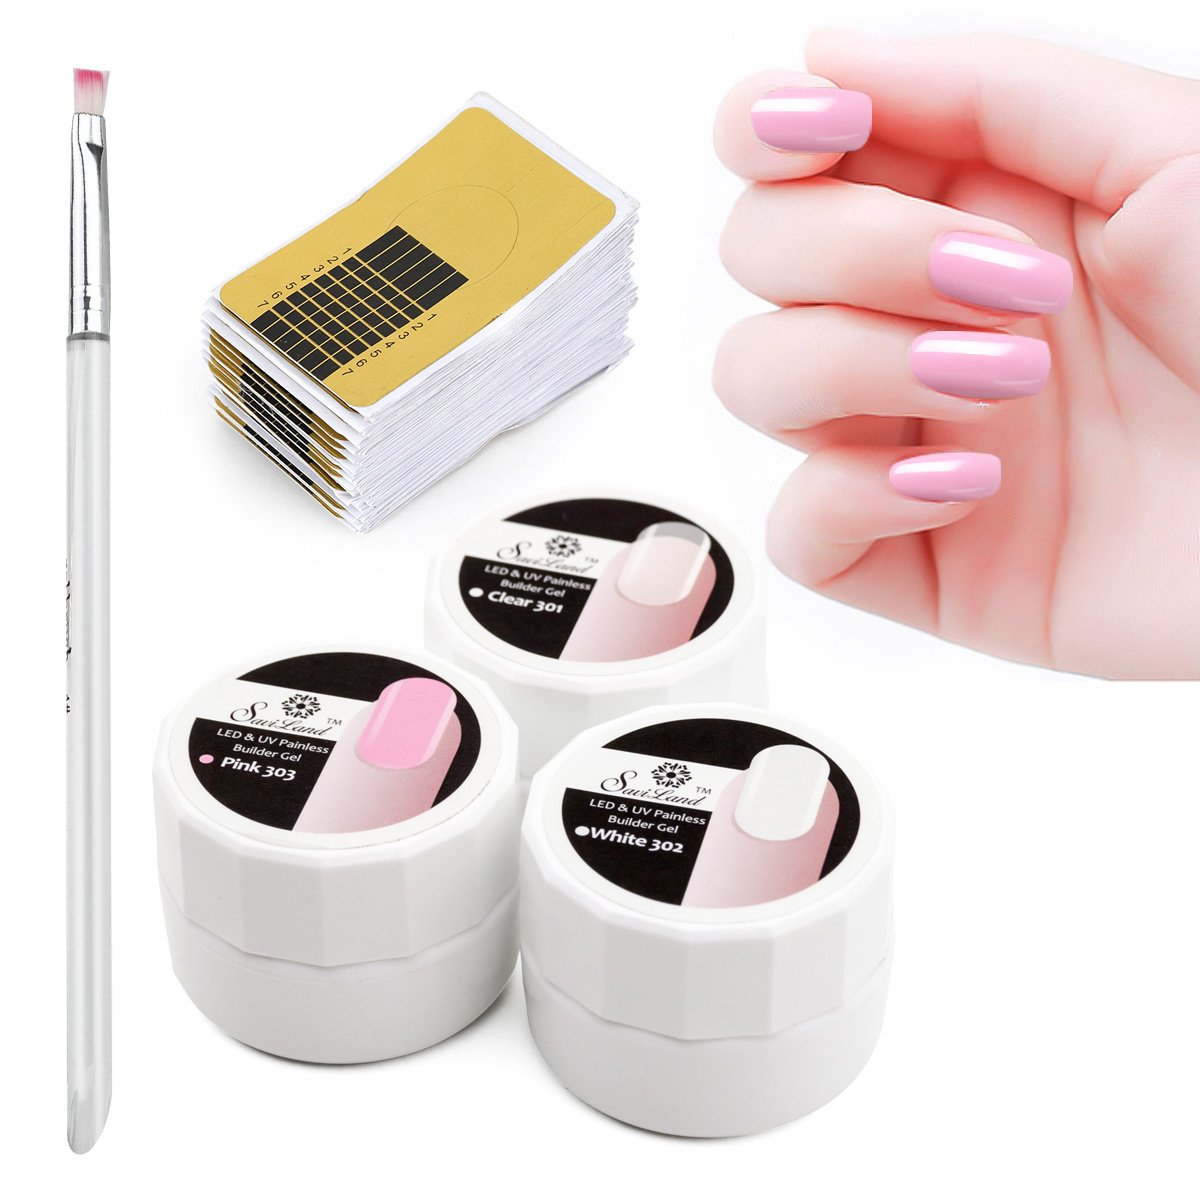 3 Colours Builder Gel, Saviland Nail Extension Gel Nail Form Sticker Brush Manicure Set Nail Art UV Gel Removable Painless Gel 8g